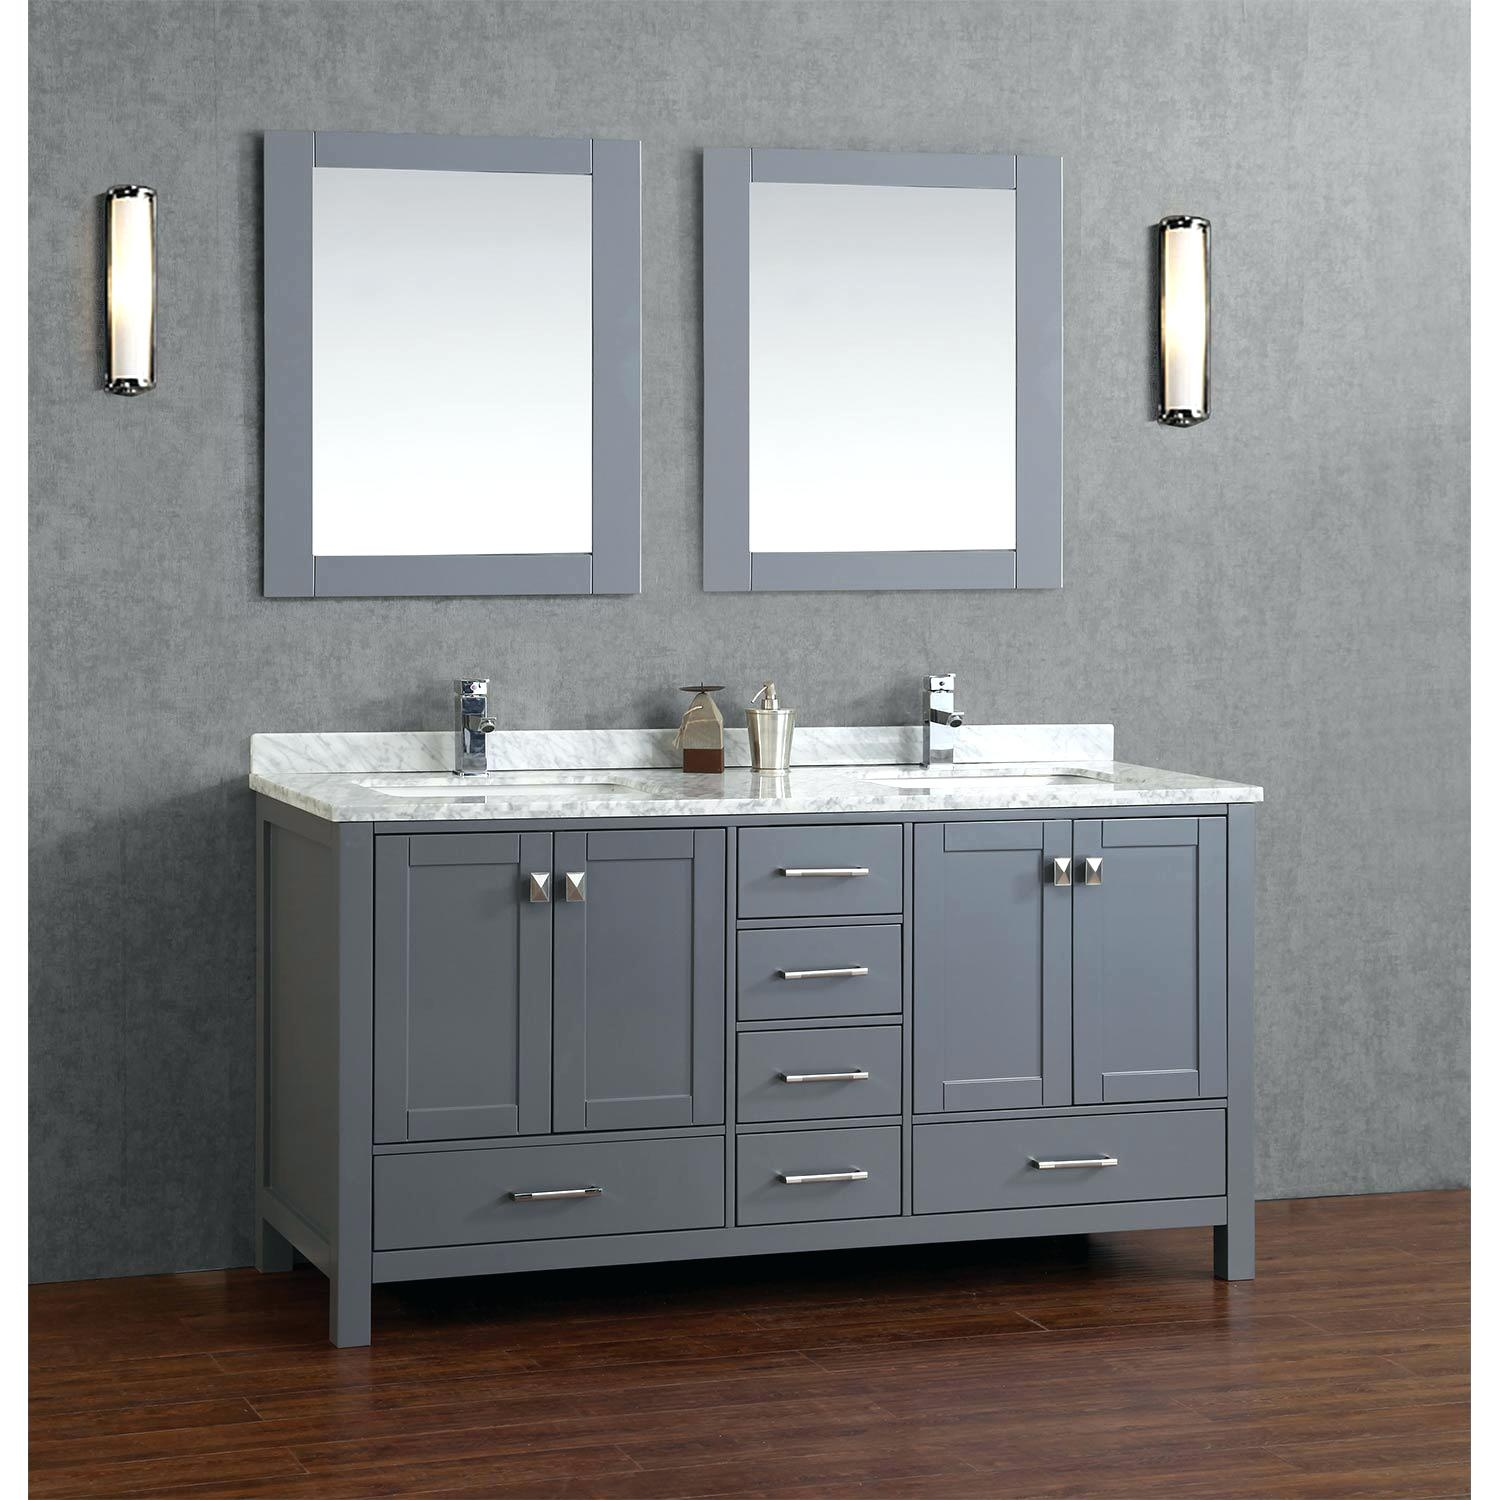 Solid Wood Bathroom Vanity 72